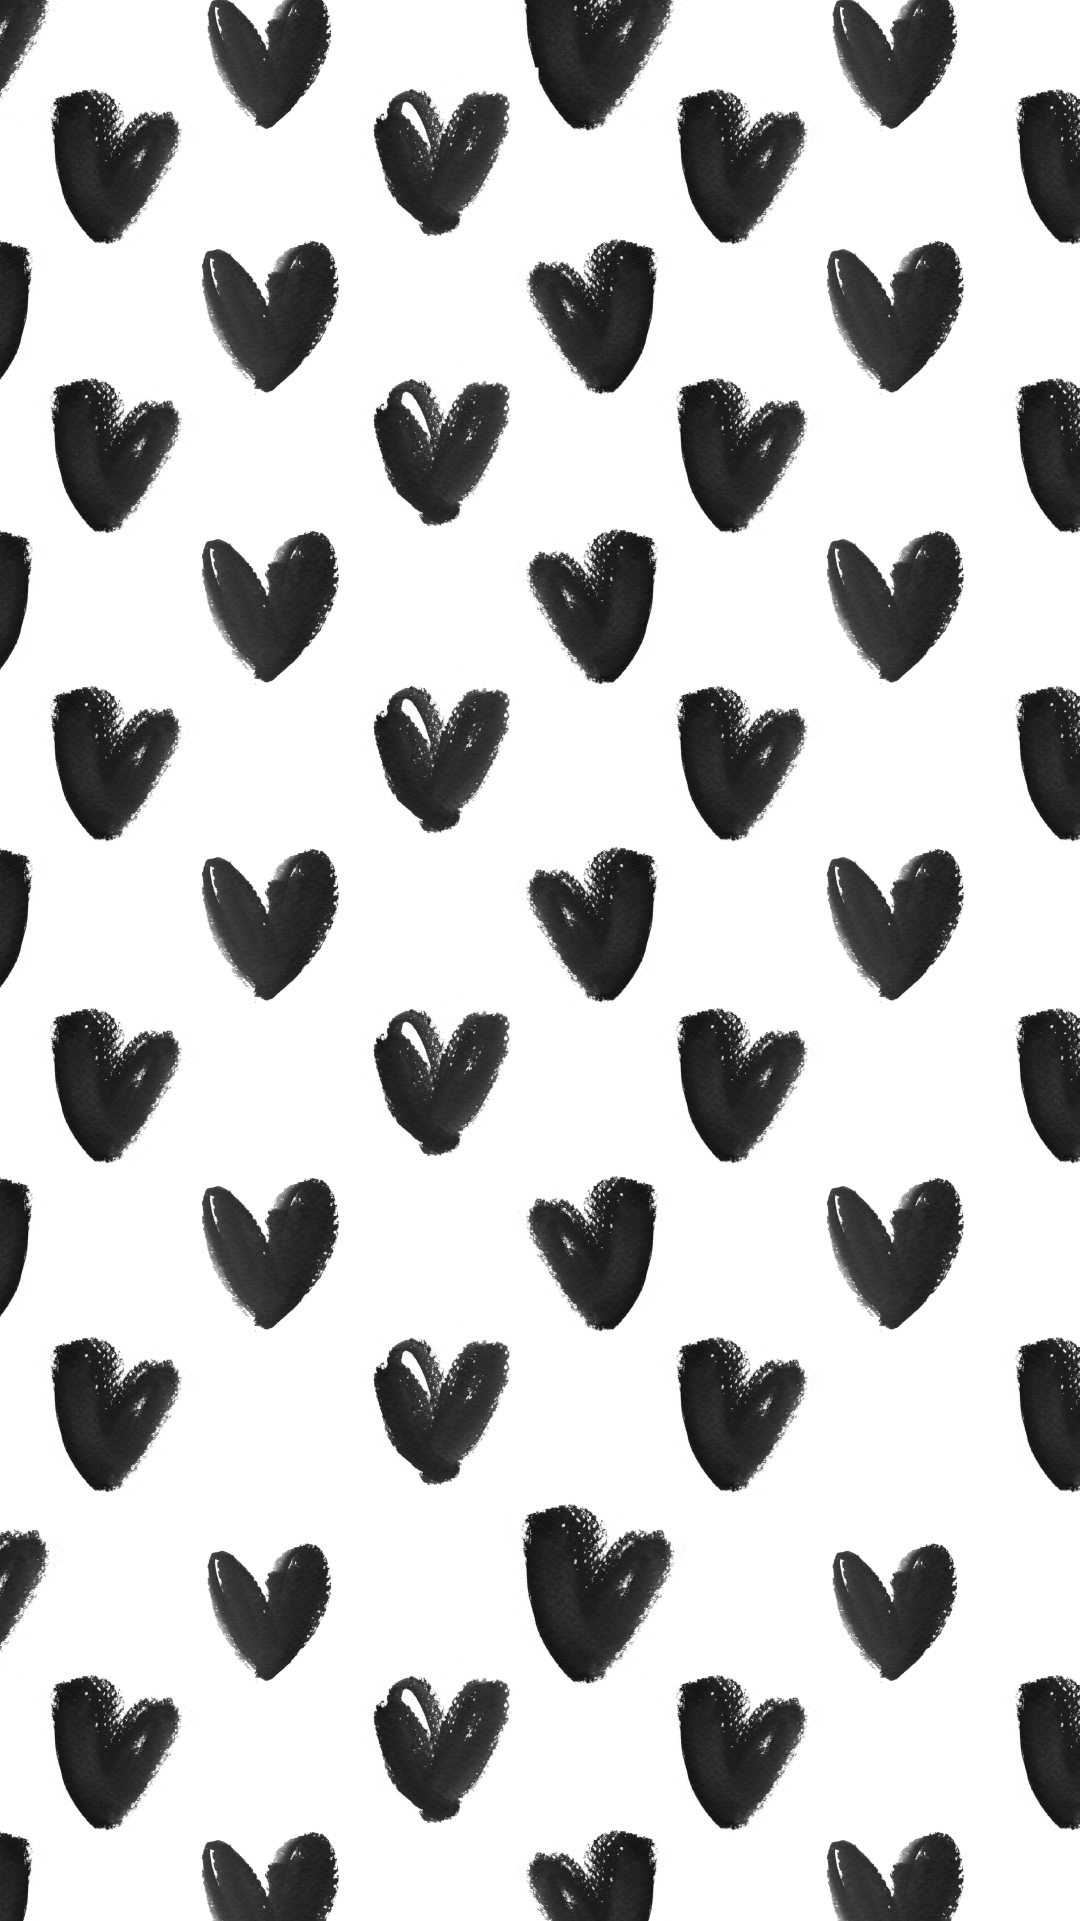 Black-White-watercolour-hearts-iphone-background-phone-lock-screen-wallpaper-wp3403346